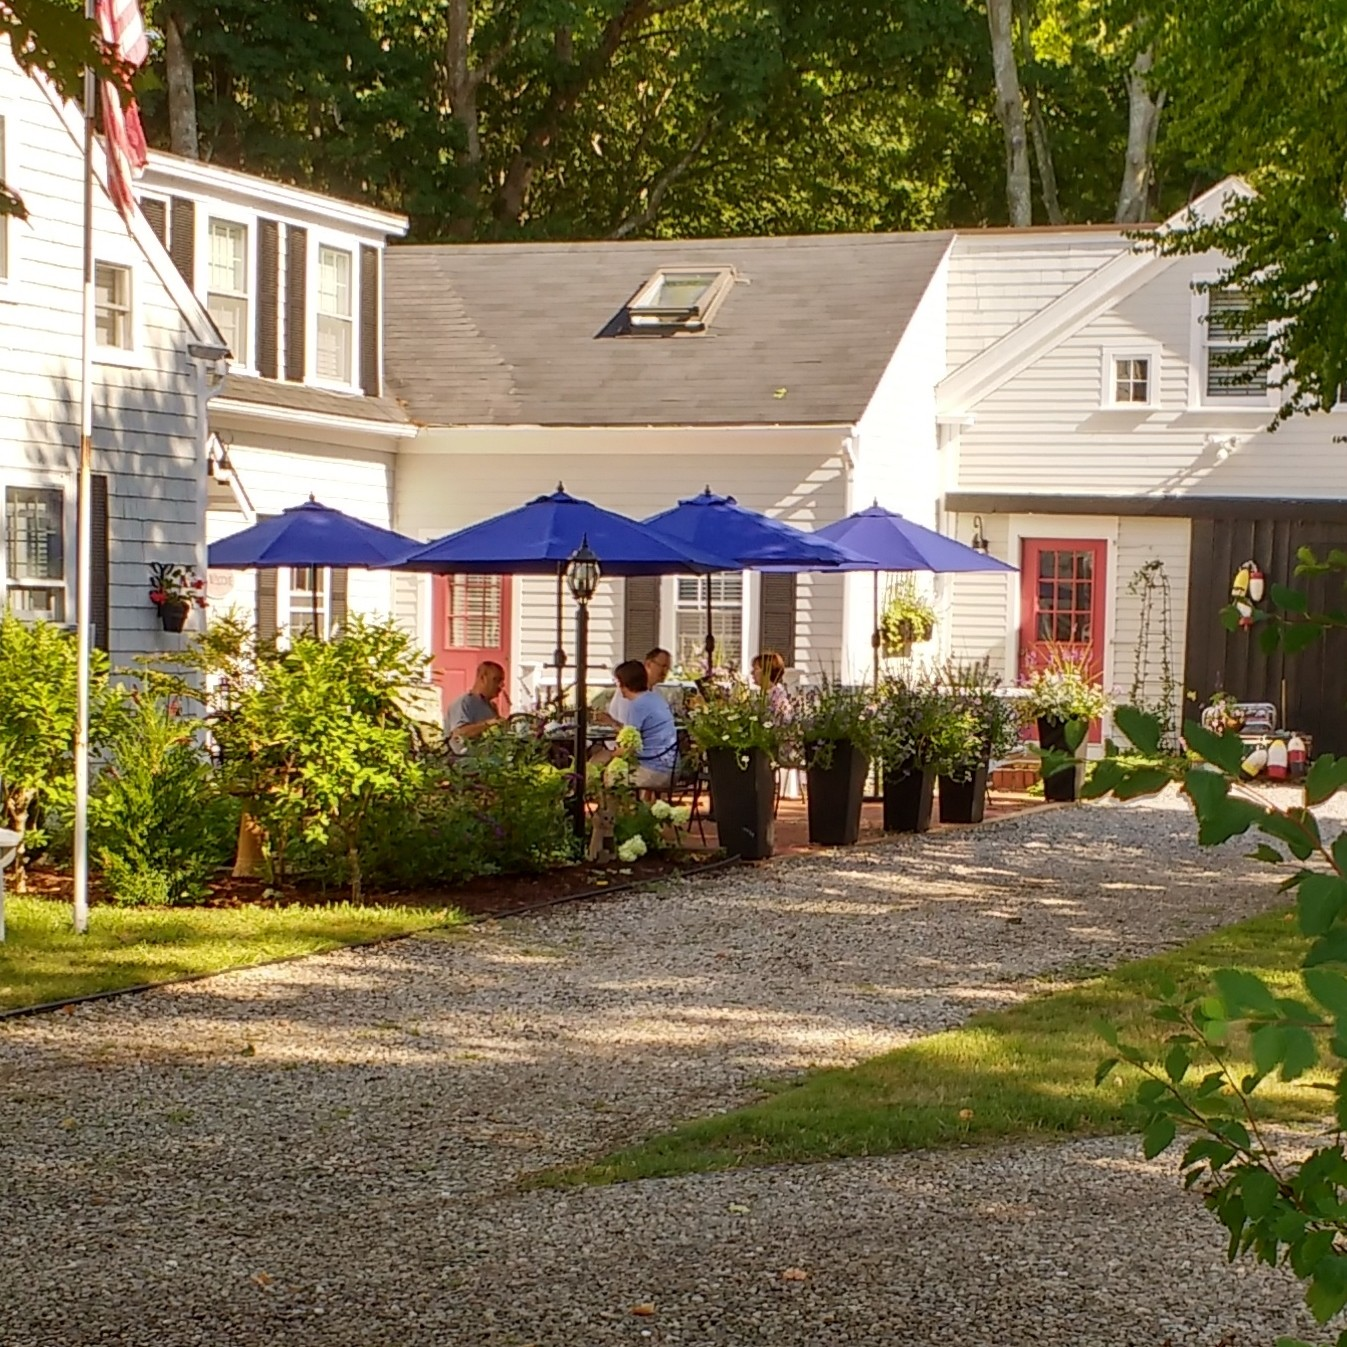 Hotels In Sandwich Cape Cod: Cape Cod Breakfast: Authentic & Gourmet